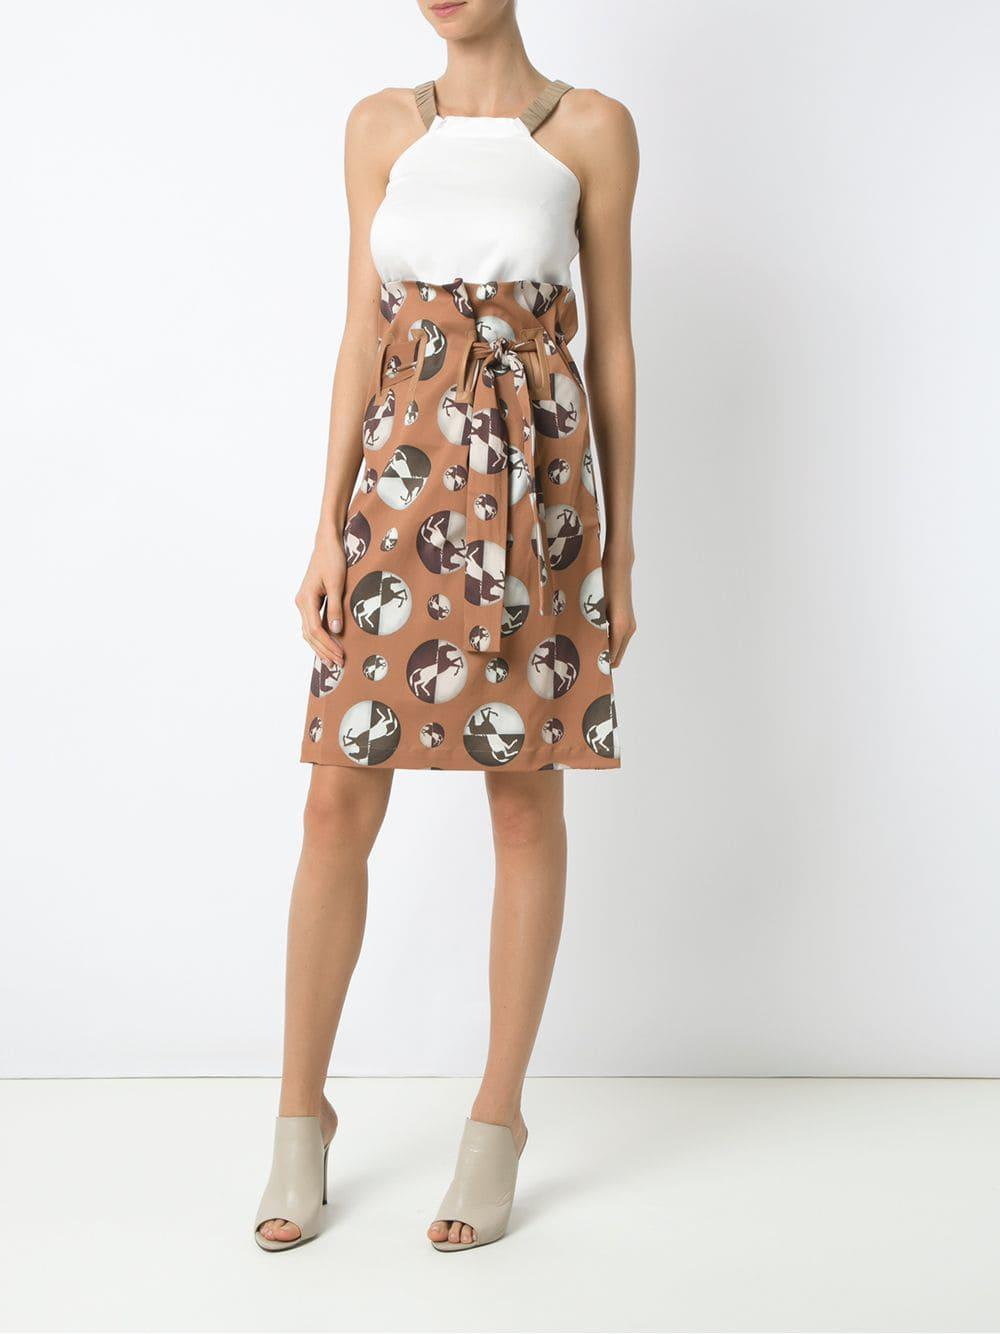 4437da7dad Lyst - Adriana Degreas High Waist Midi Skirt in Brown